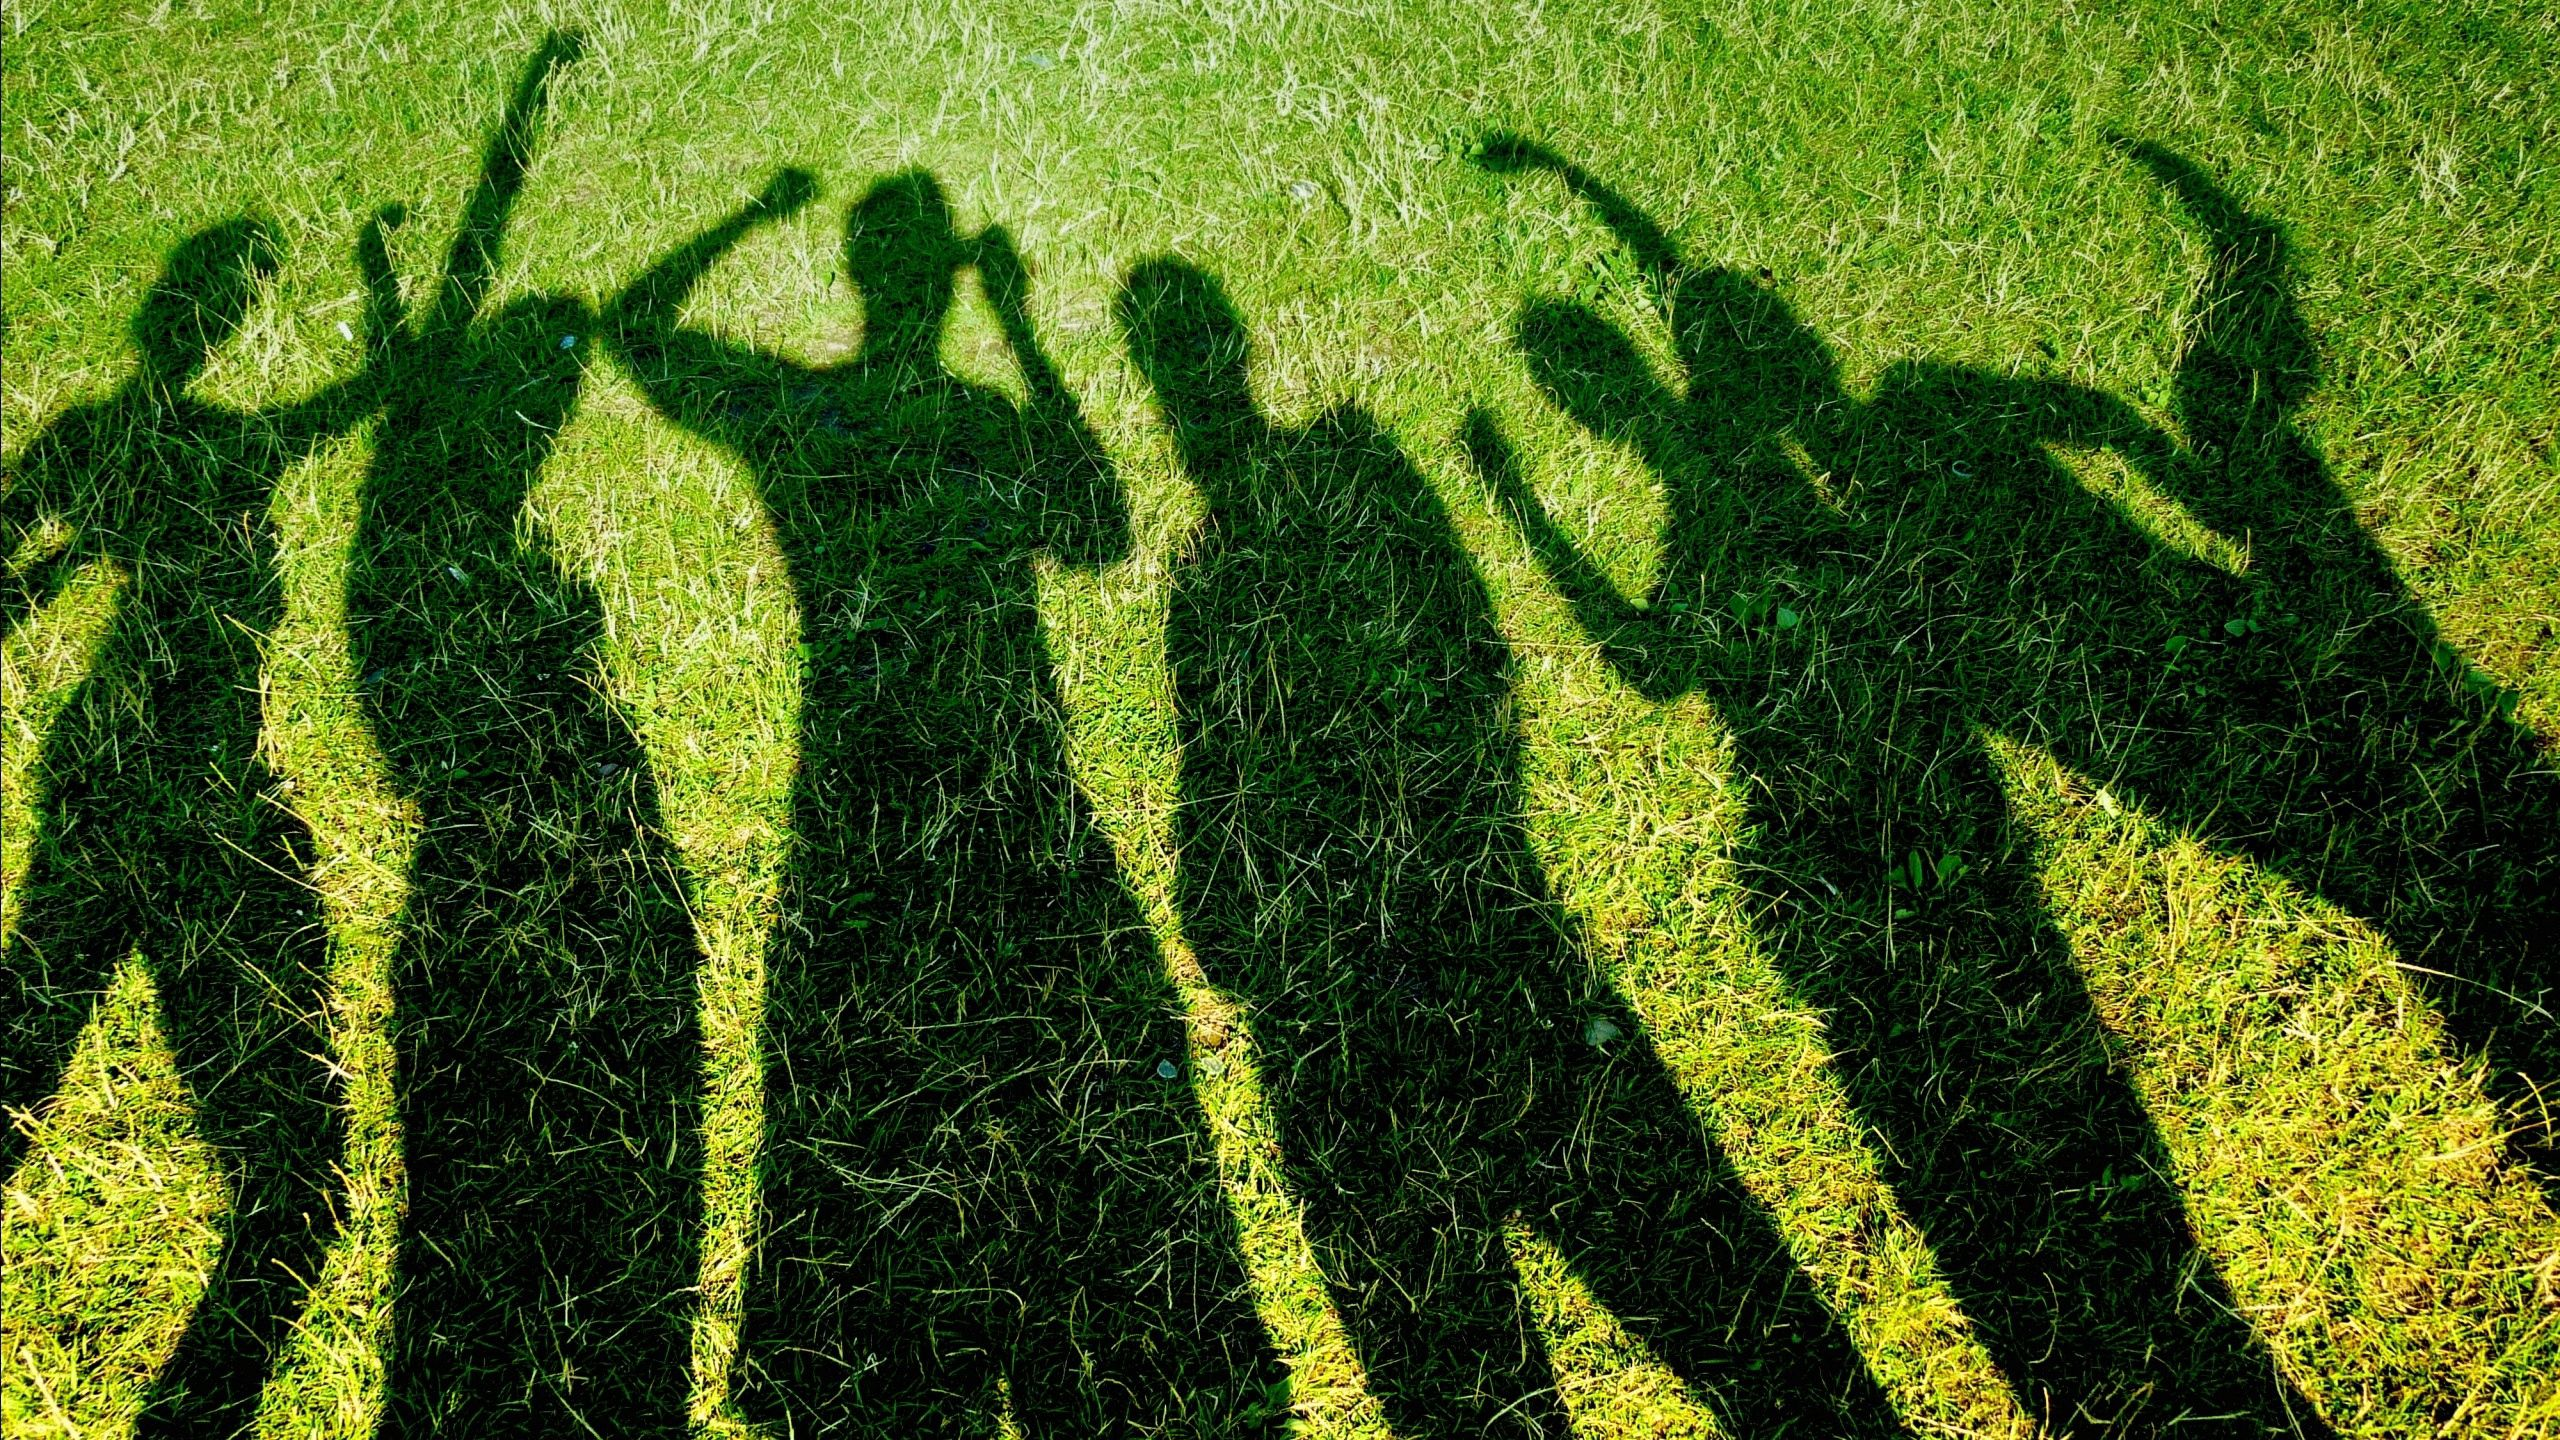 79743 download wallpaper Miscellanea, Miscellaneous, Shadow, Grass, People, Happiness screensavers and pictures for free